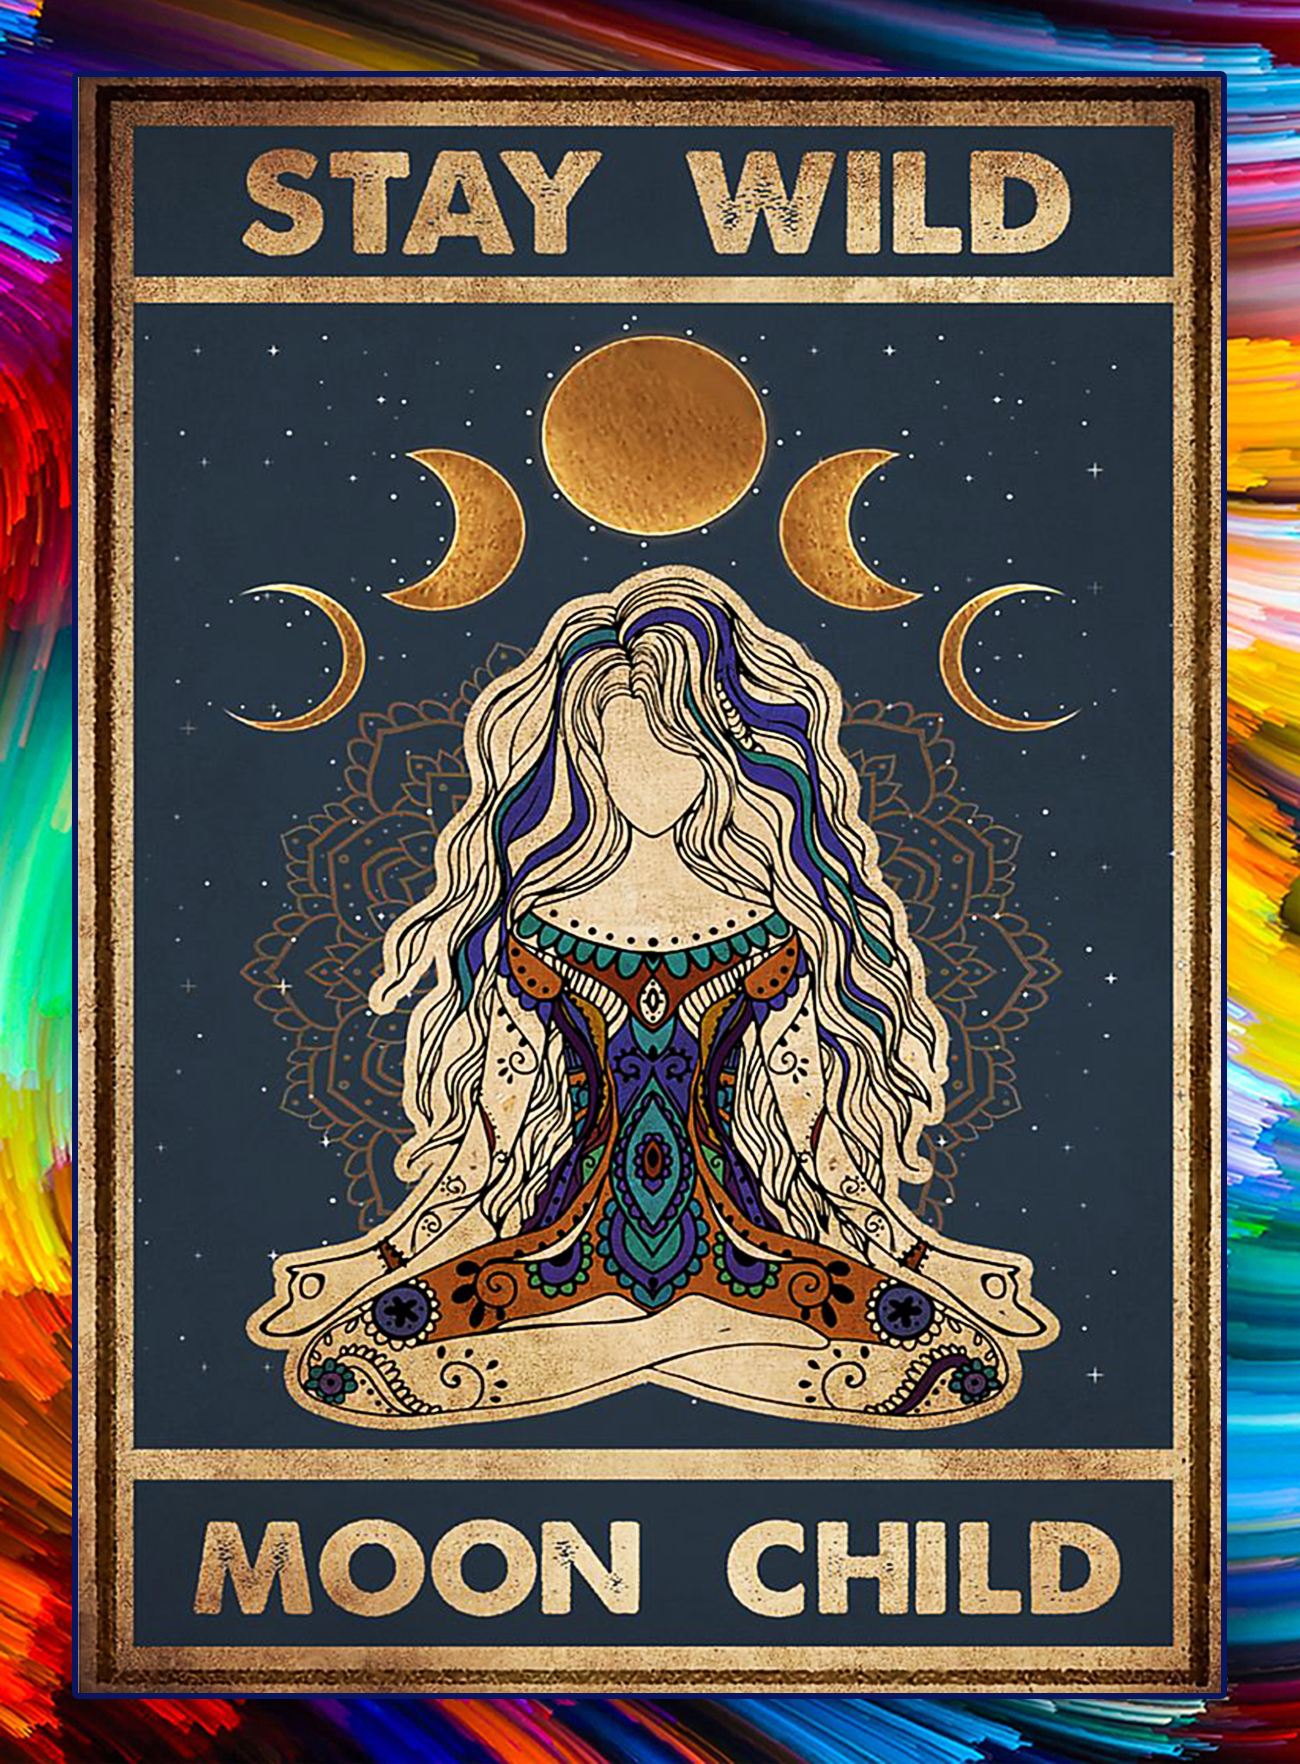 Stay wild moon child yoga girl poster - A4